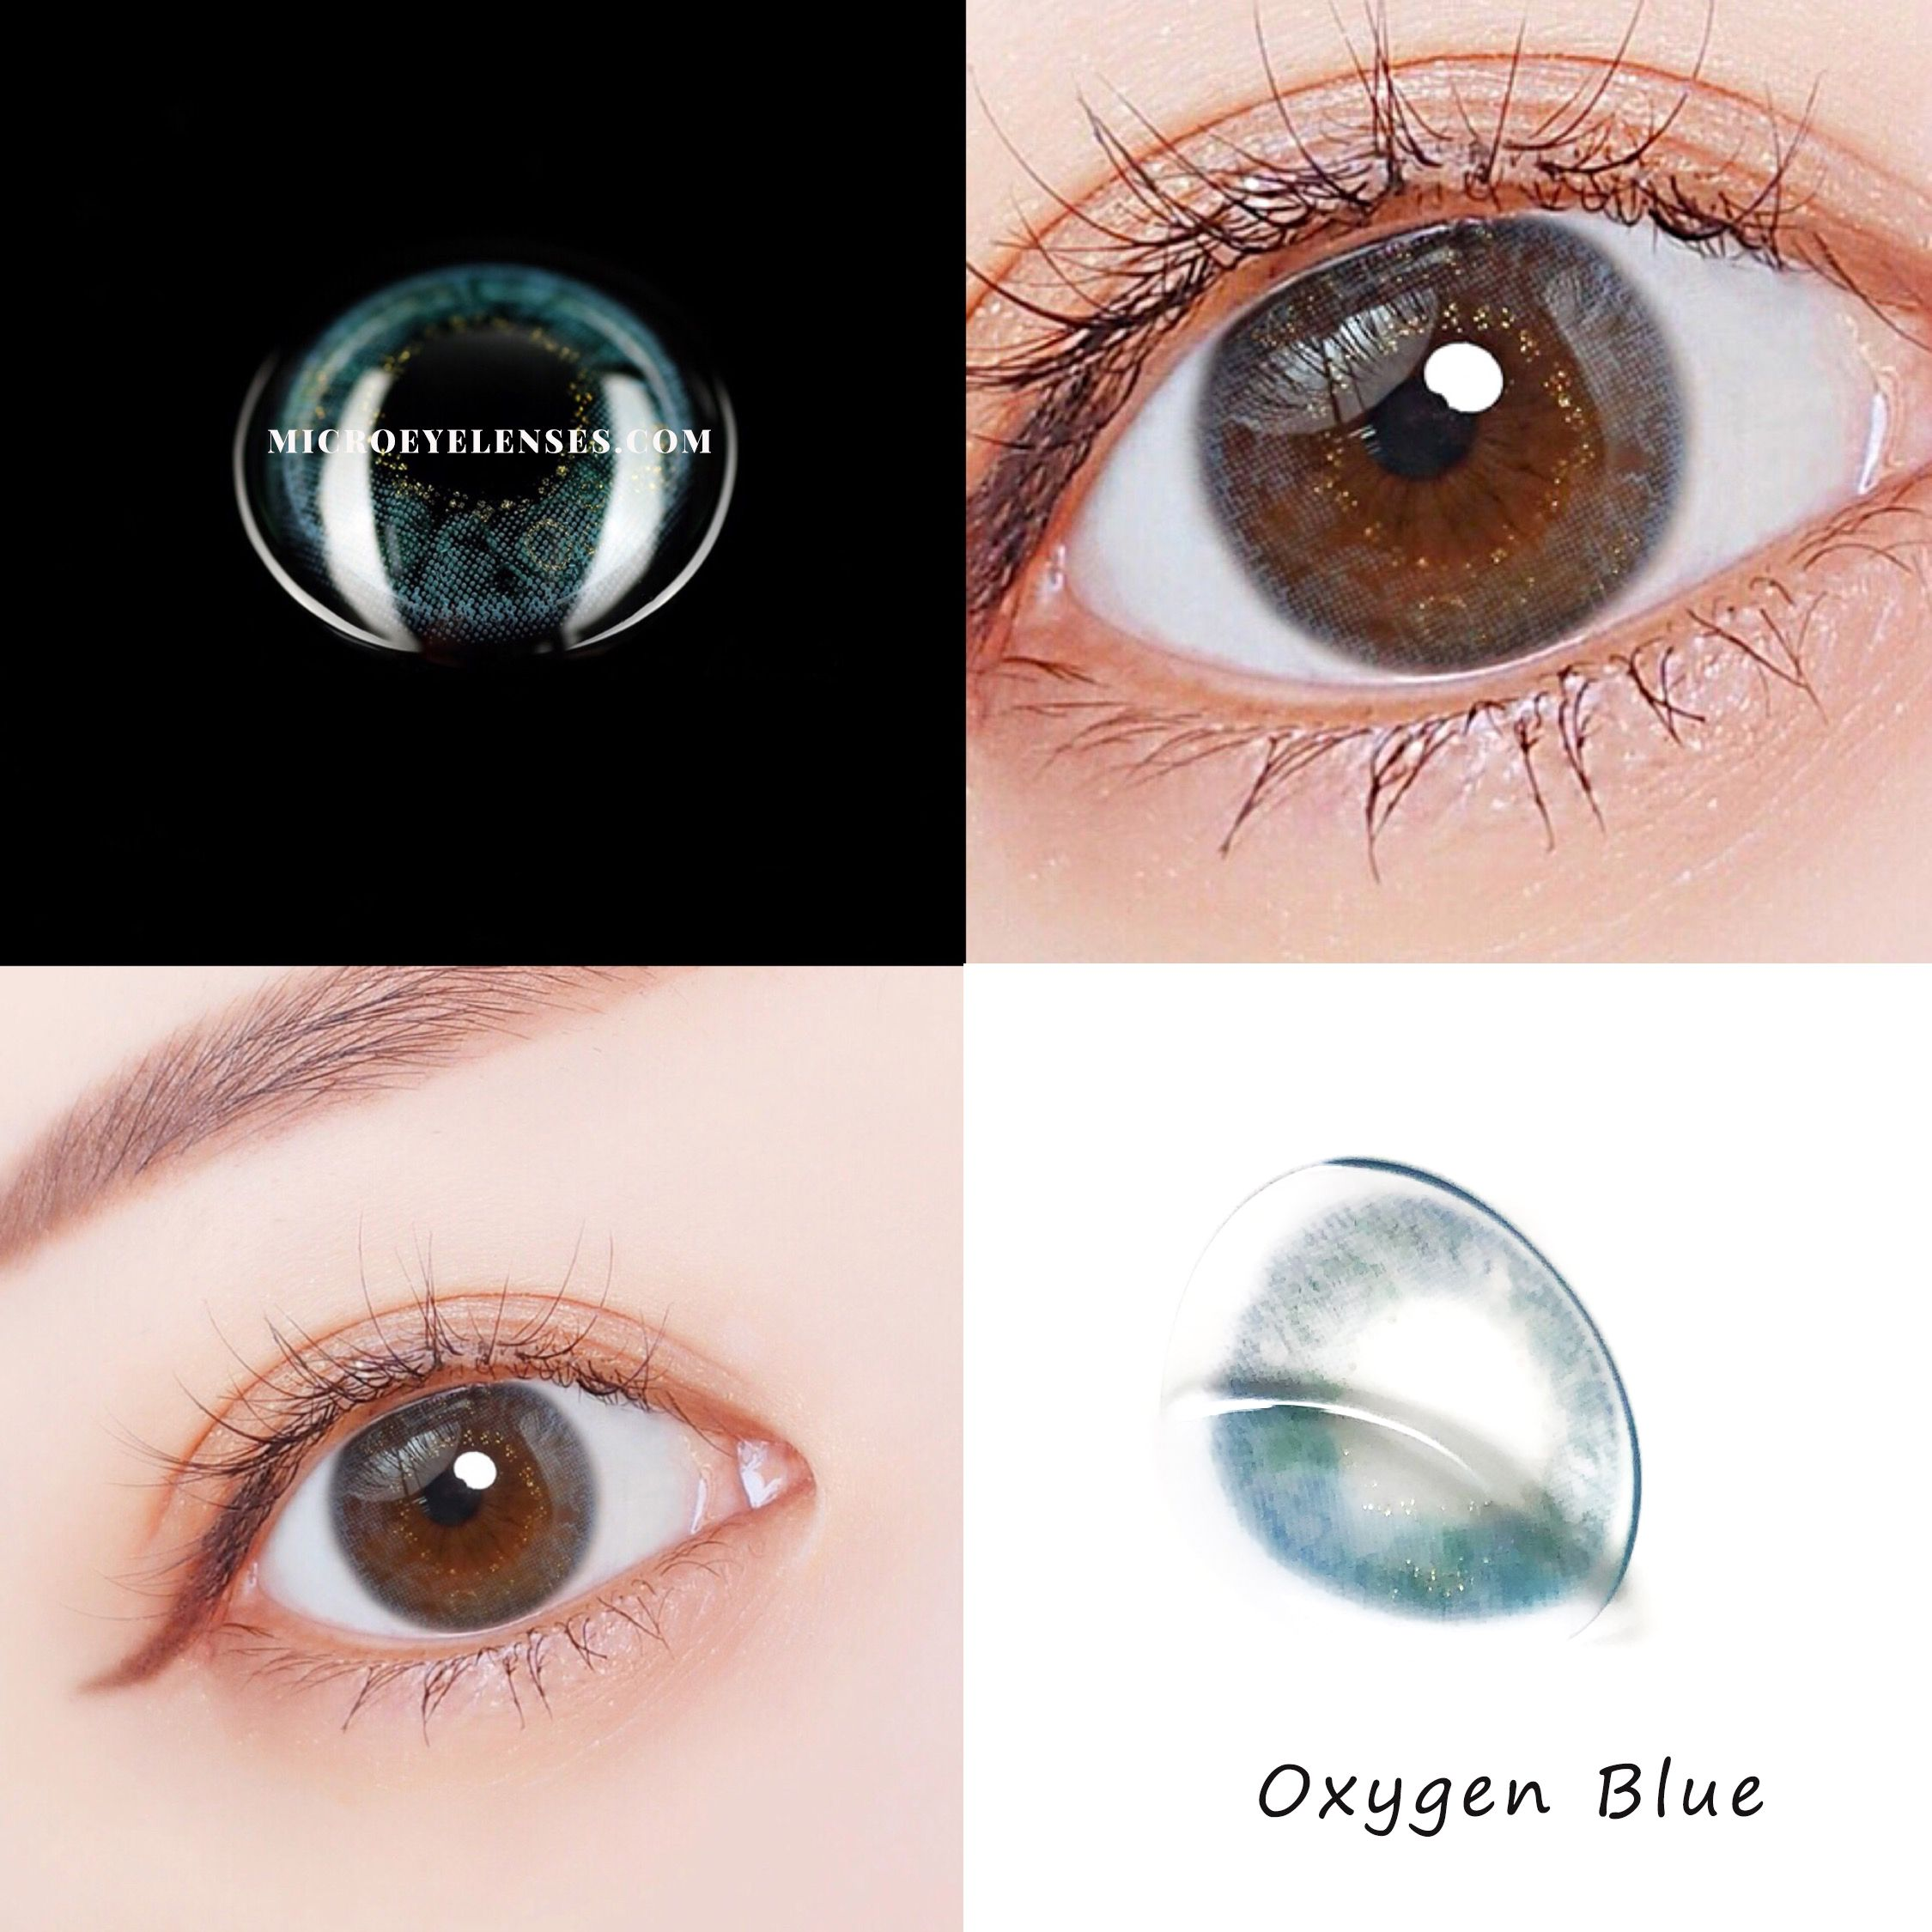 Microeyelenses Com Oxygen Blue Dream Colored Contacts Lens Coloredcontactlenses Bestcoloredcontacts Cheapcolorcontacts Colorcontactlenses Coloredeyecon Mắt